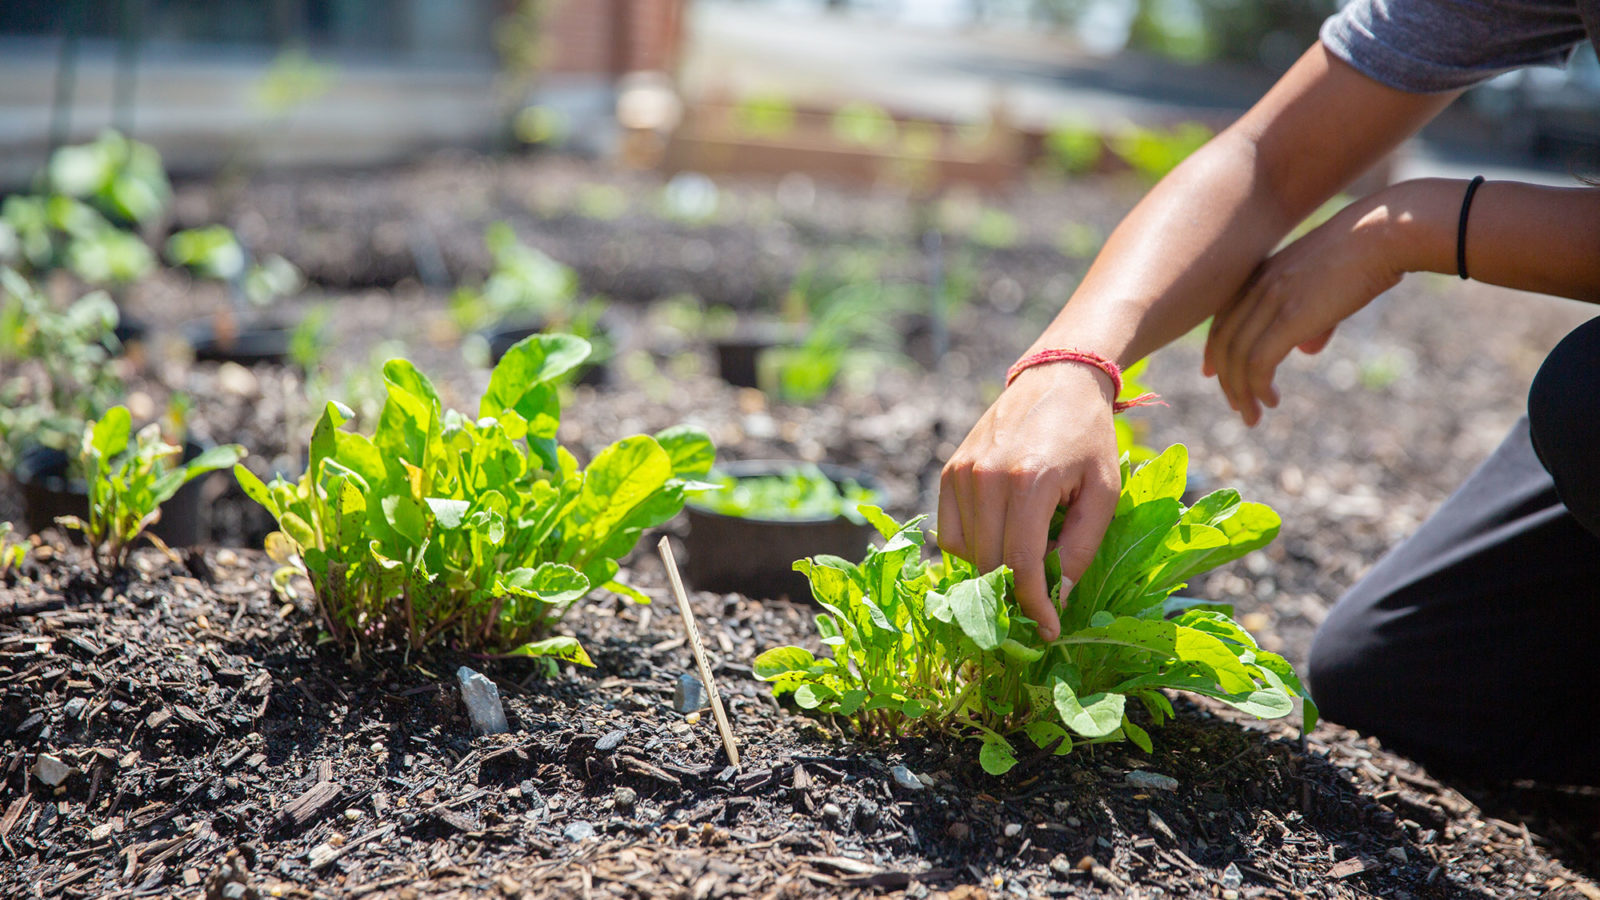 A hand tends to plantlife in soil.